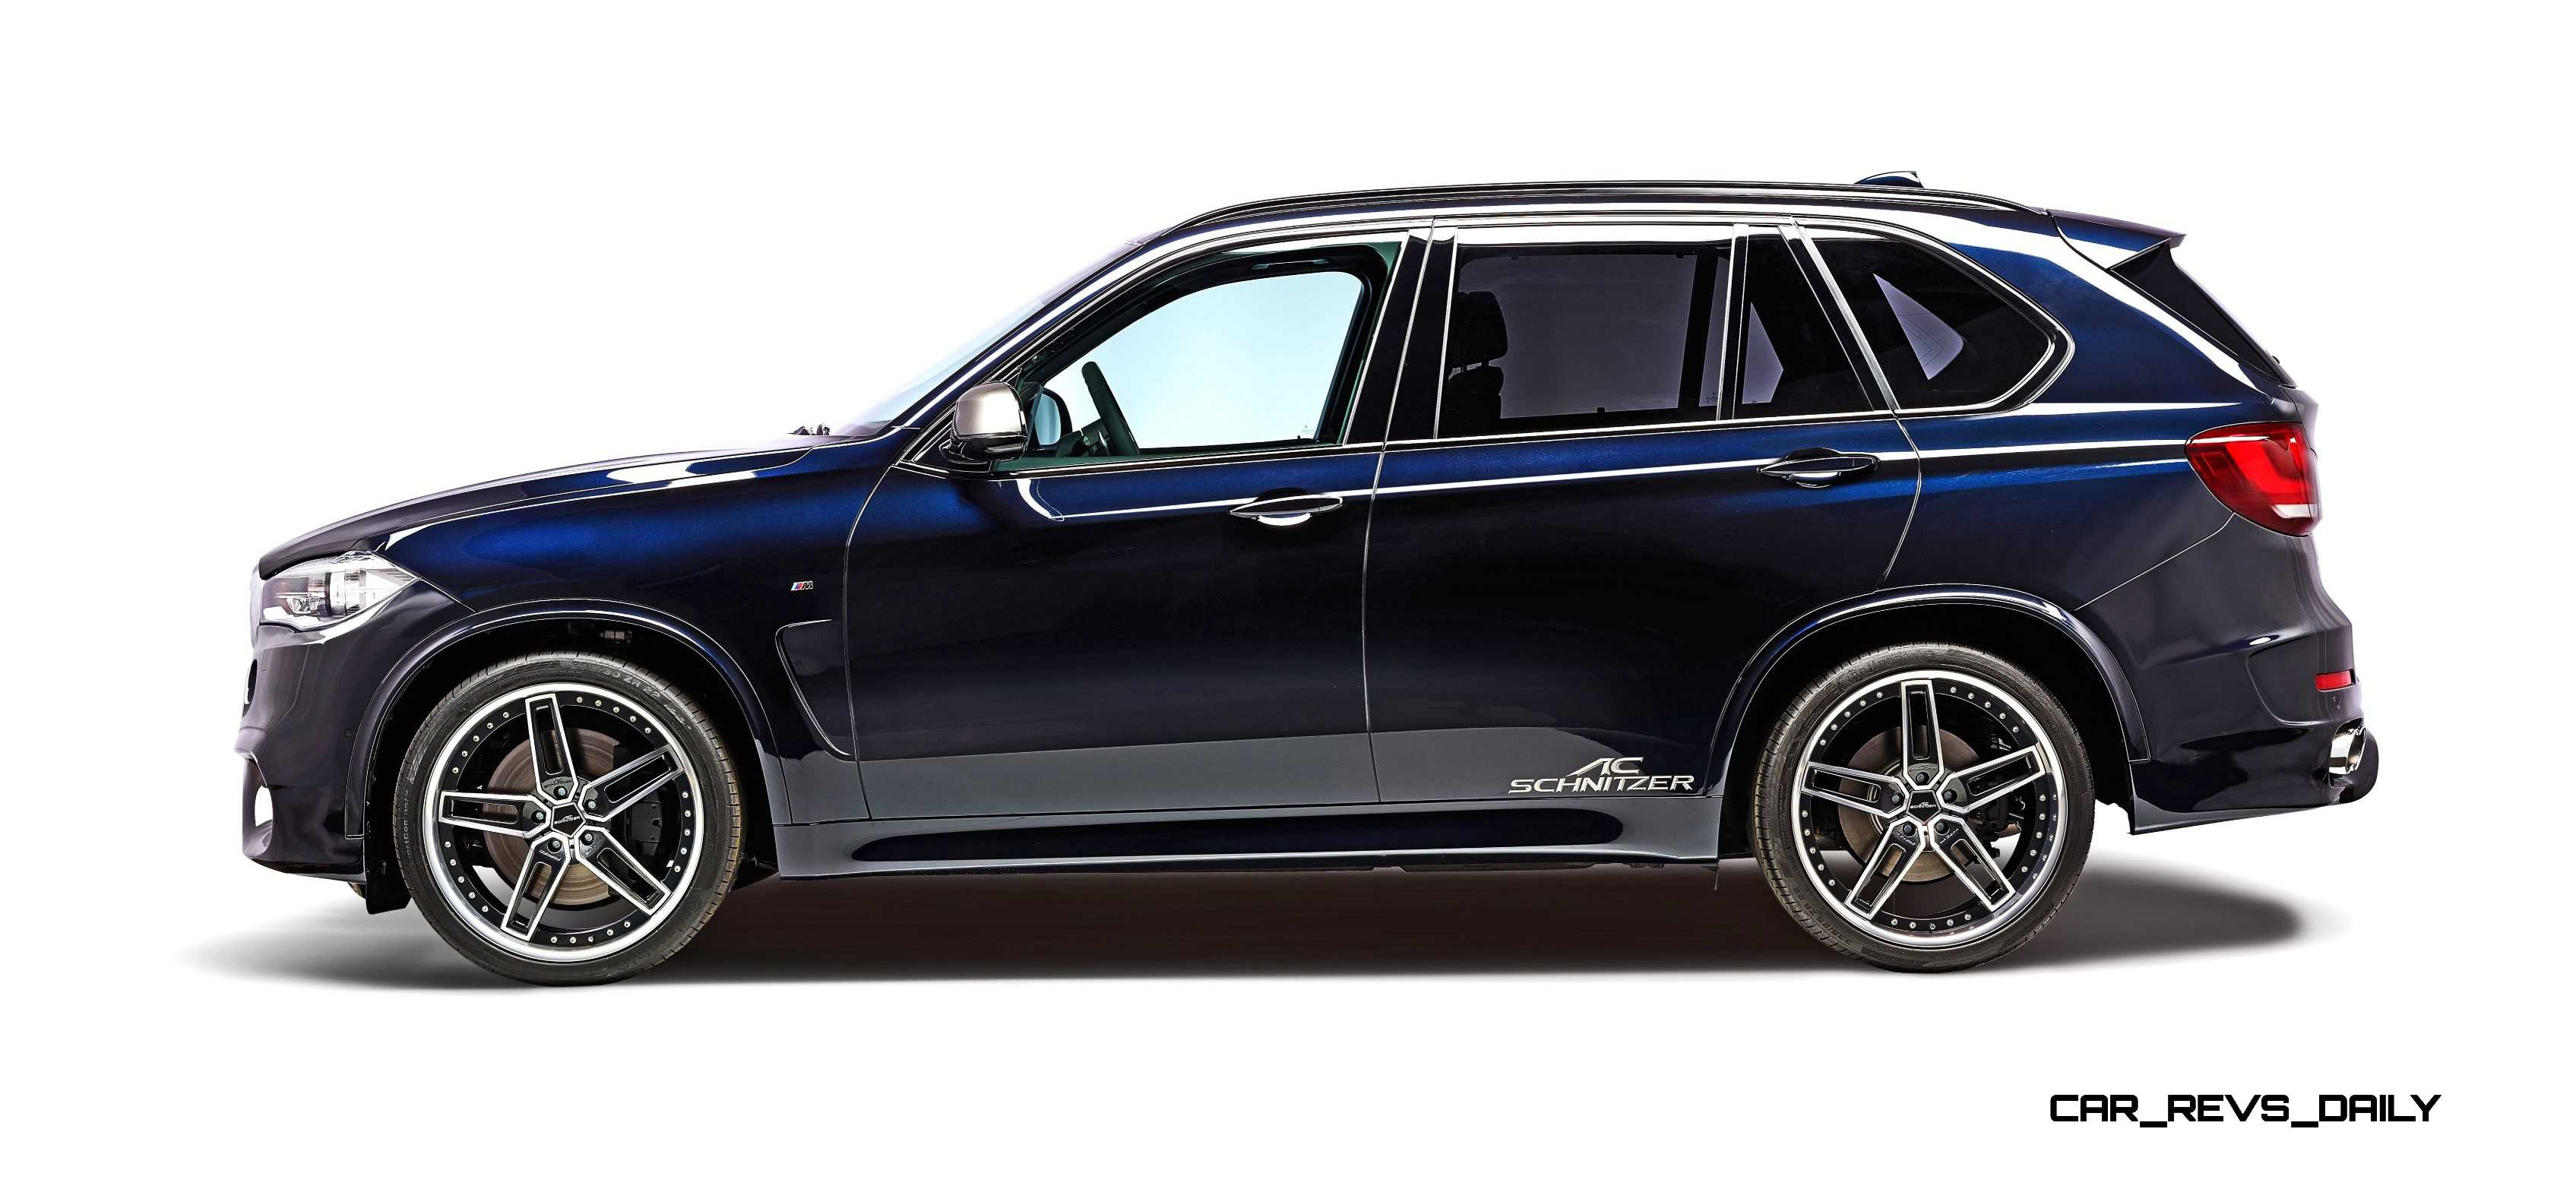 ac schnitzer bmw x5 upgrades are gorgeous and functional. Black Bedroom Furniture Sets. Home Design Ideas